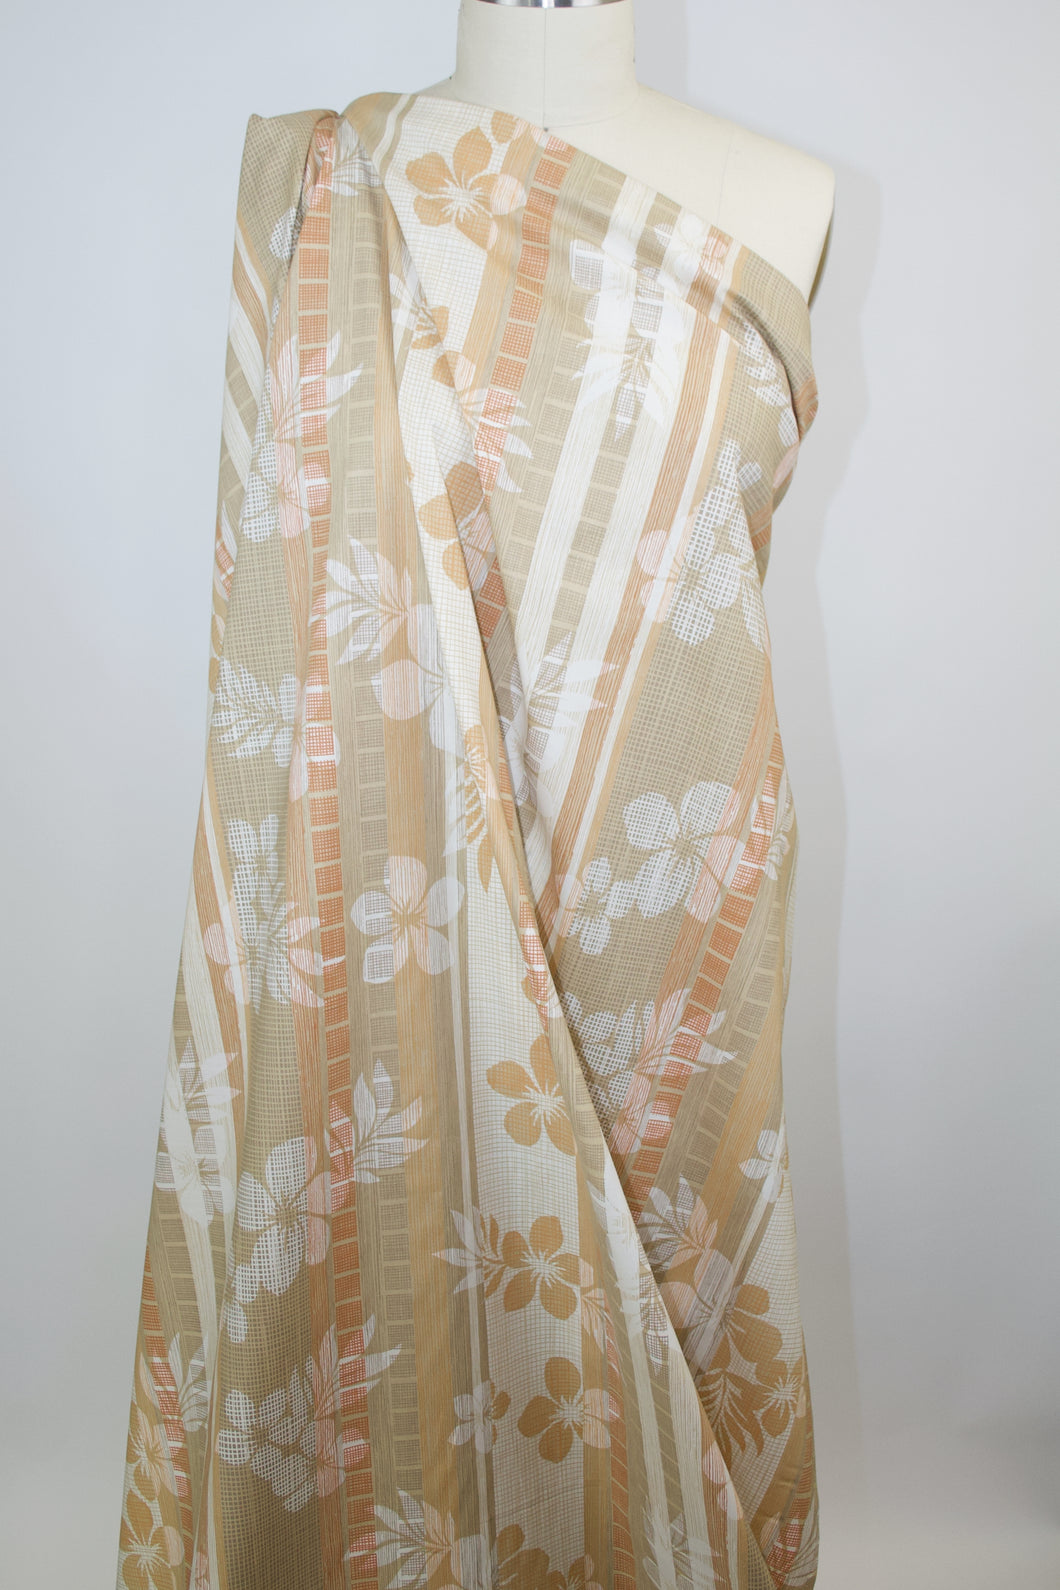 Tori Richard Floral/Stripe Cotton Lawn - Tans/Orange/Ivory/White